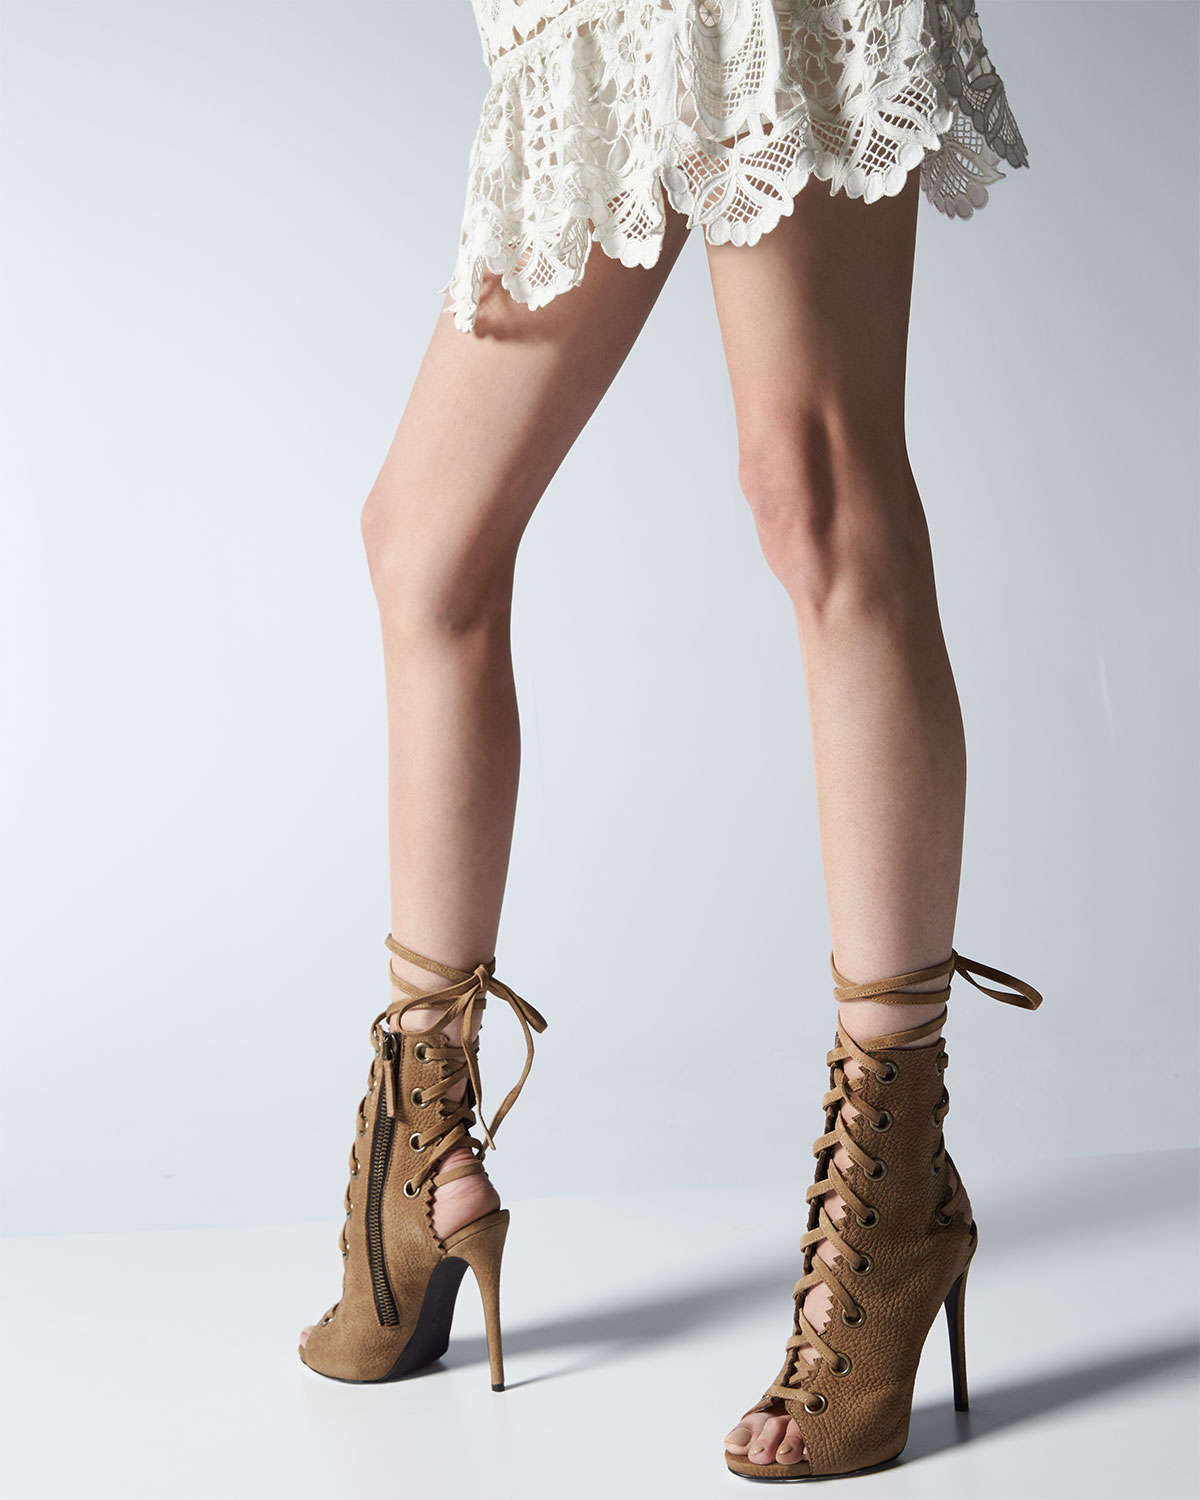 Lyst - Giuseppe Zanotti Suede Lace-up Boot in Brown f80422b7e37a